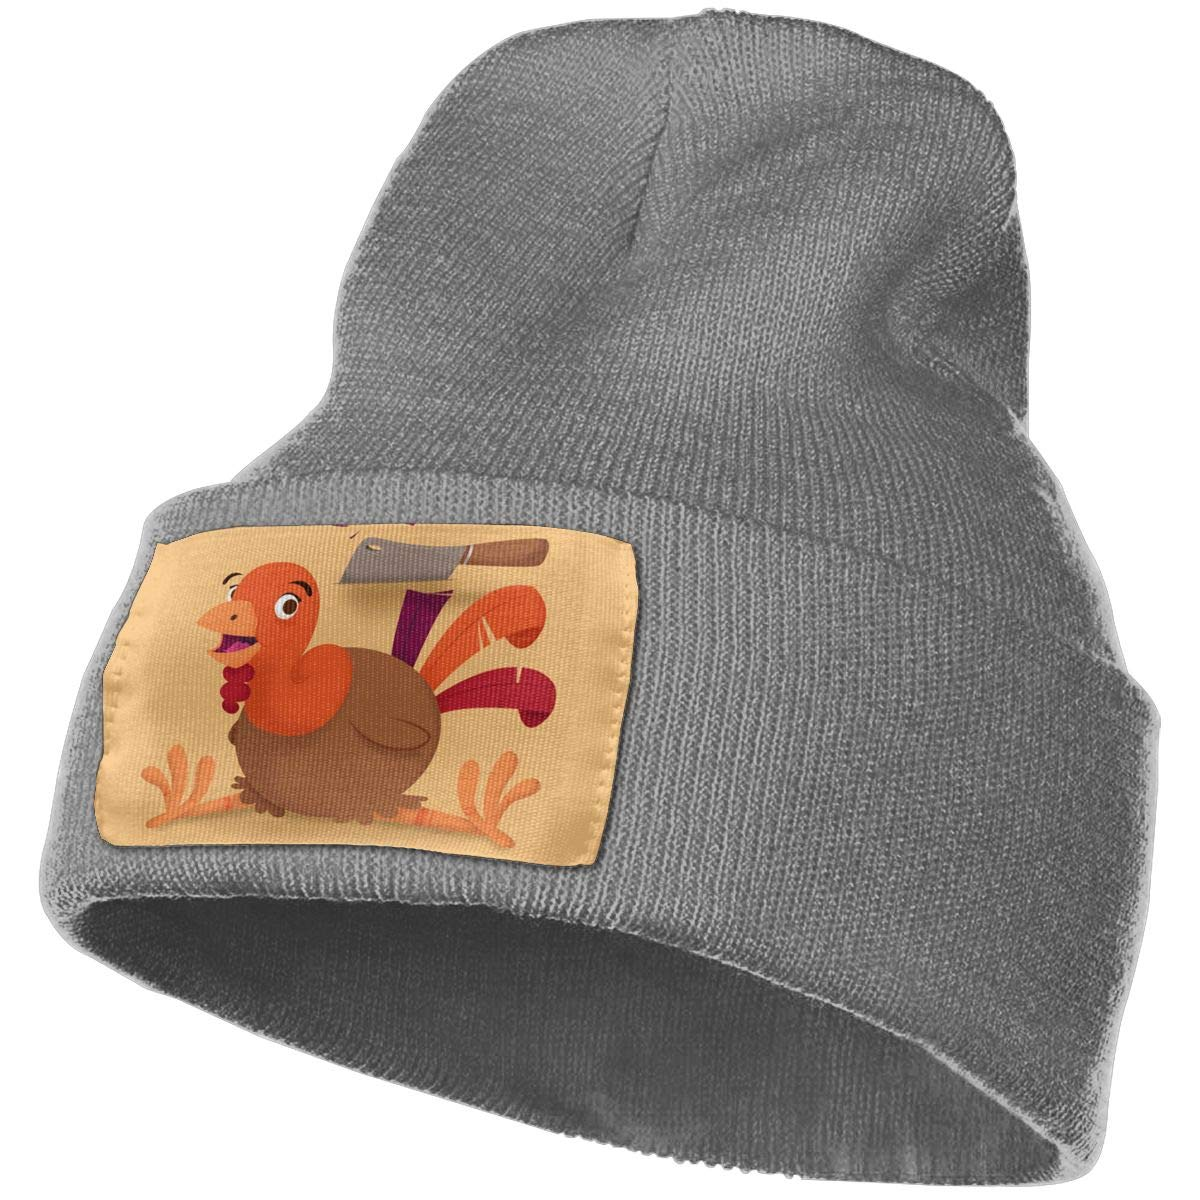 JimHappy Cook A Turkey Hat for Men and Women Winter Warm Hats Knit Slouchy Thick Skull Cap Black